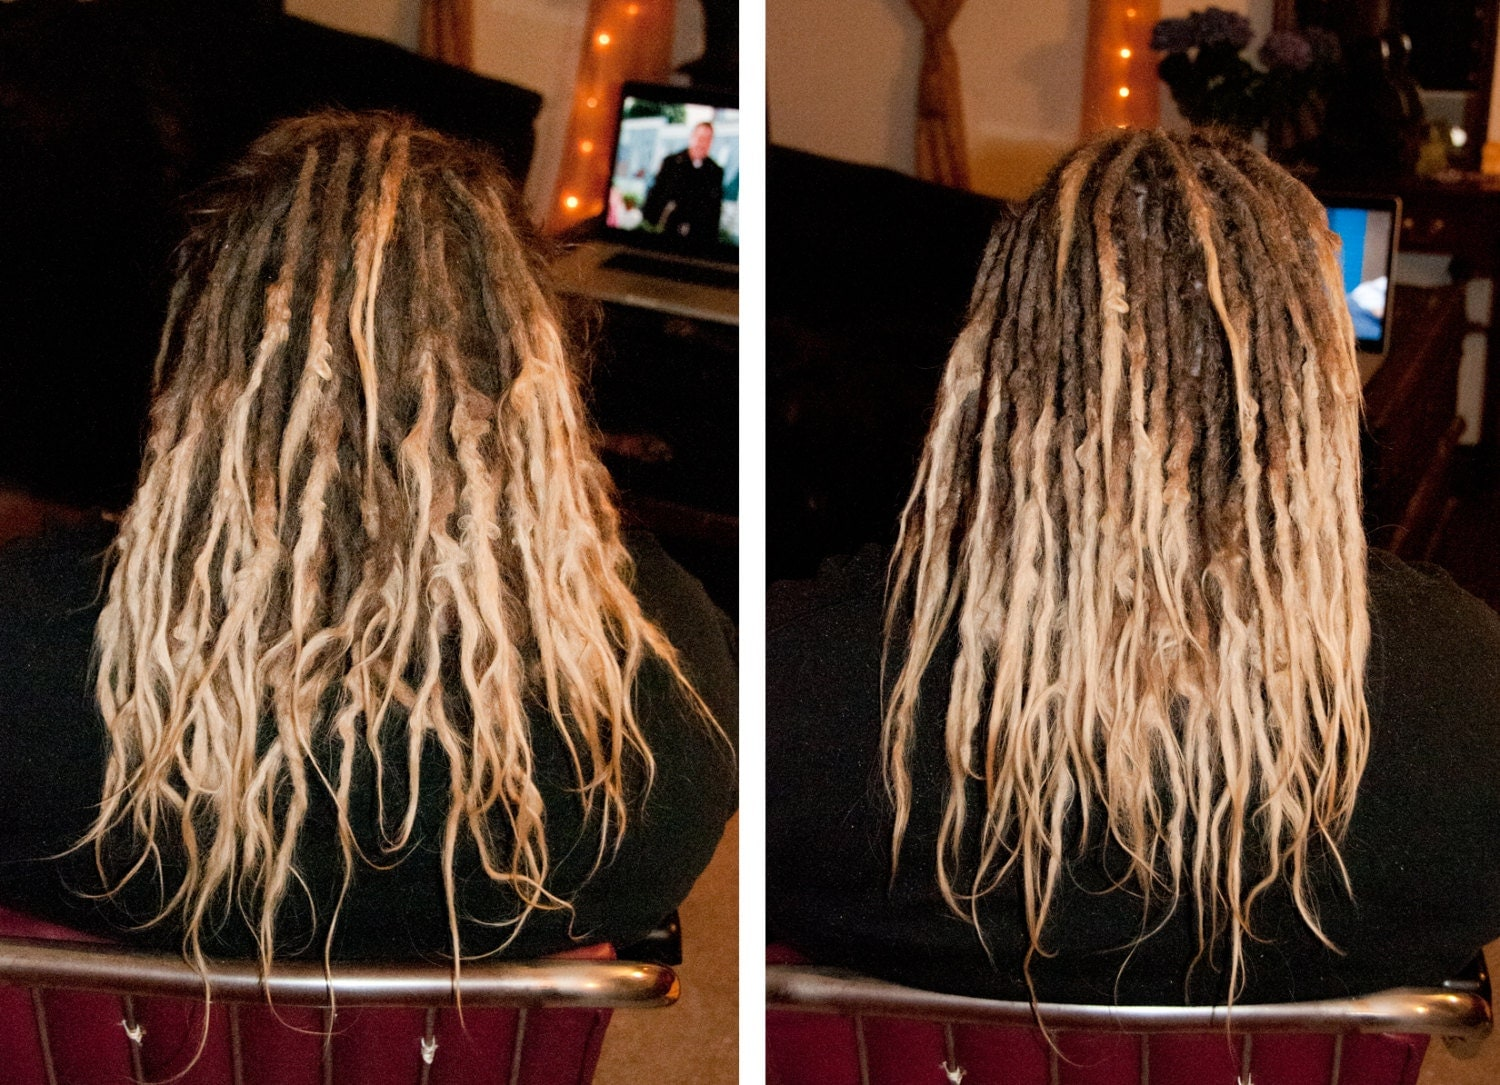 Human Hair Dread Extensions Etsy Human Hair Extensions